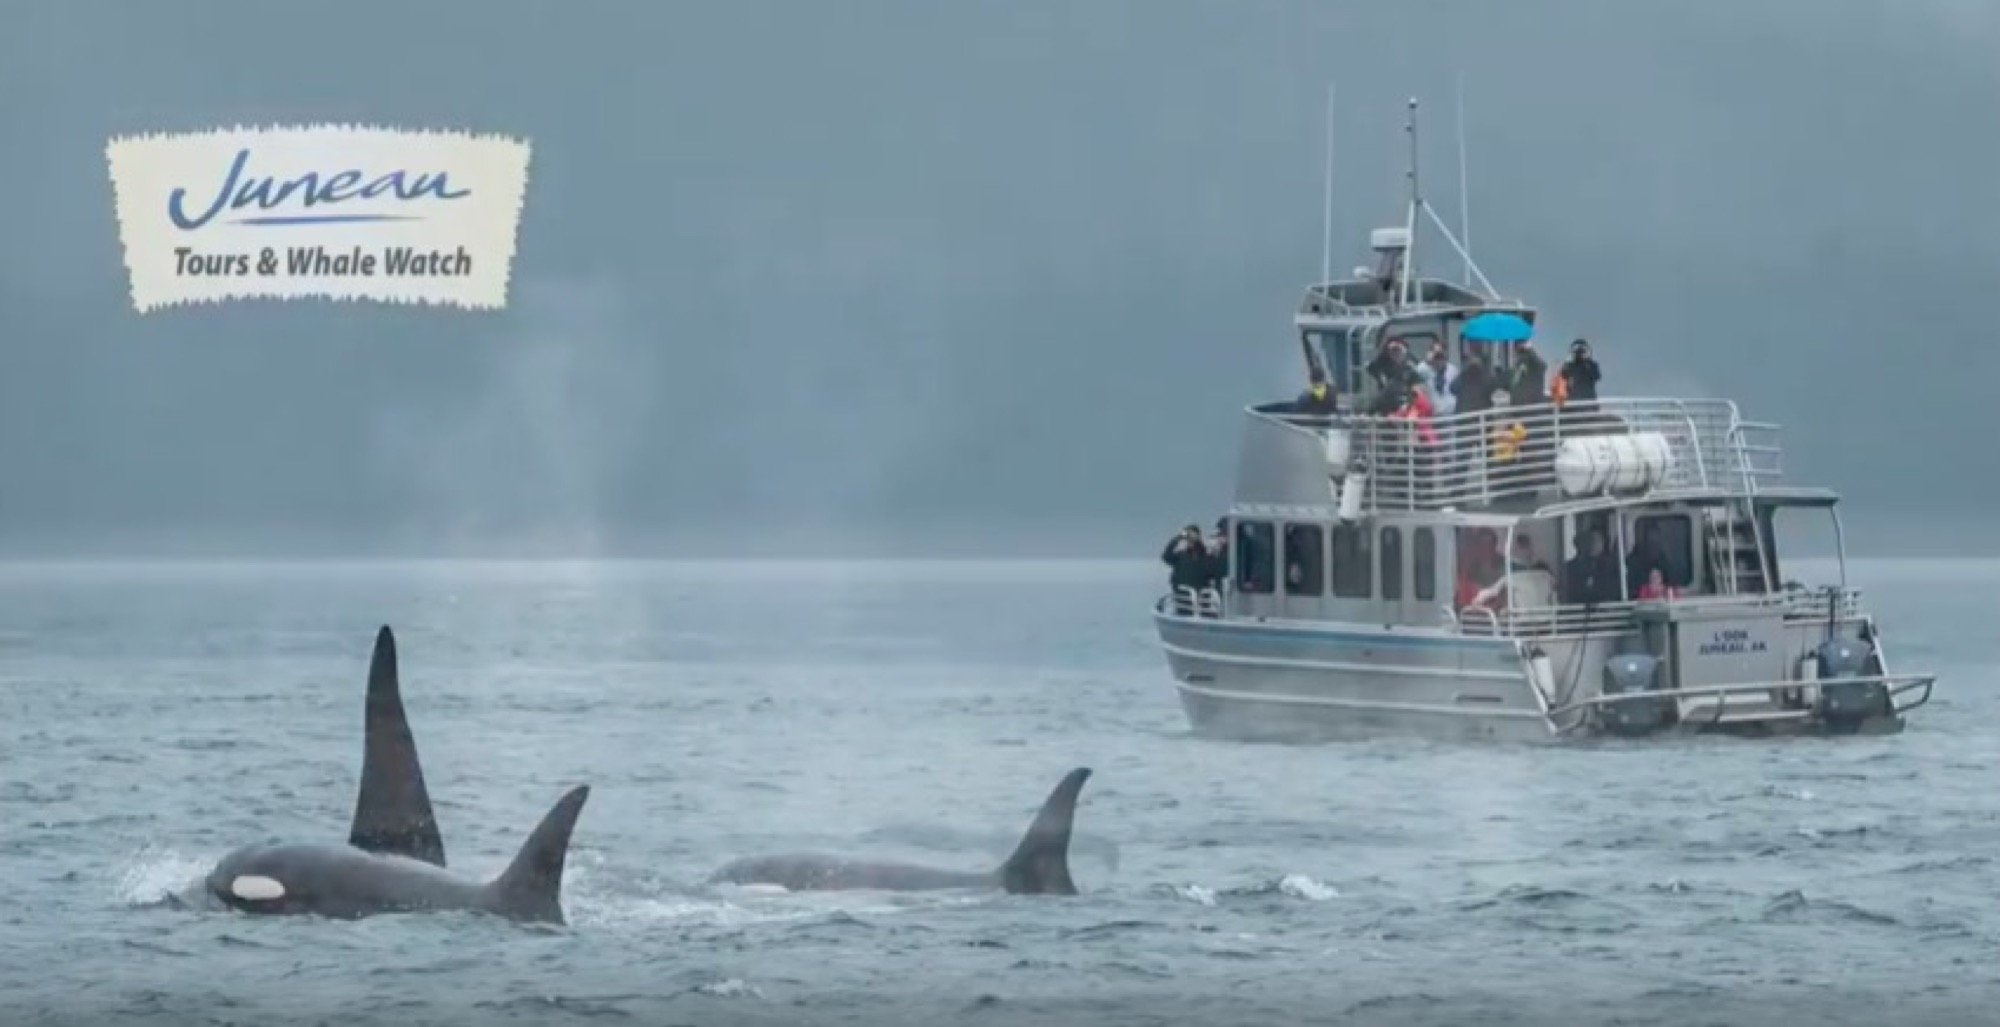 Latest Juneau Whale Watch movie: Whales of 2017